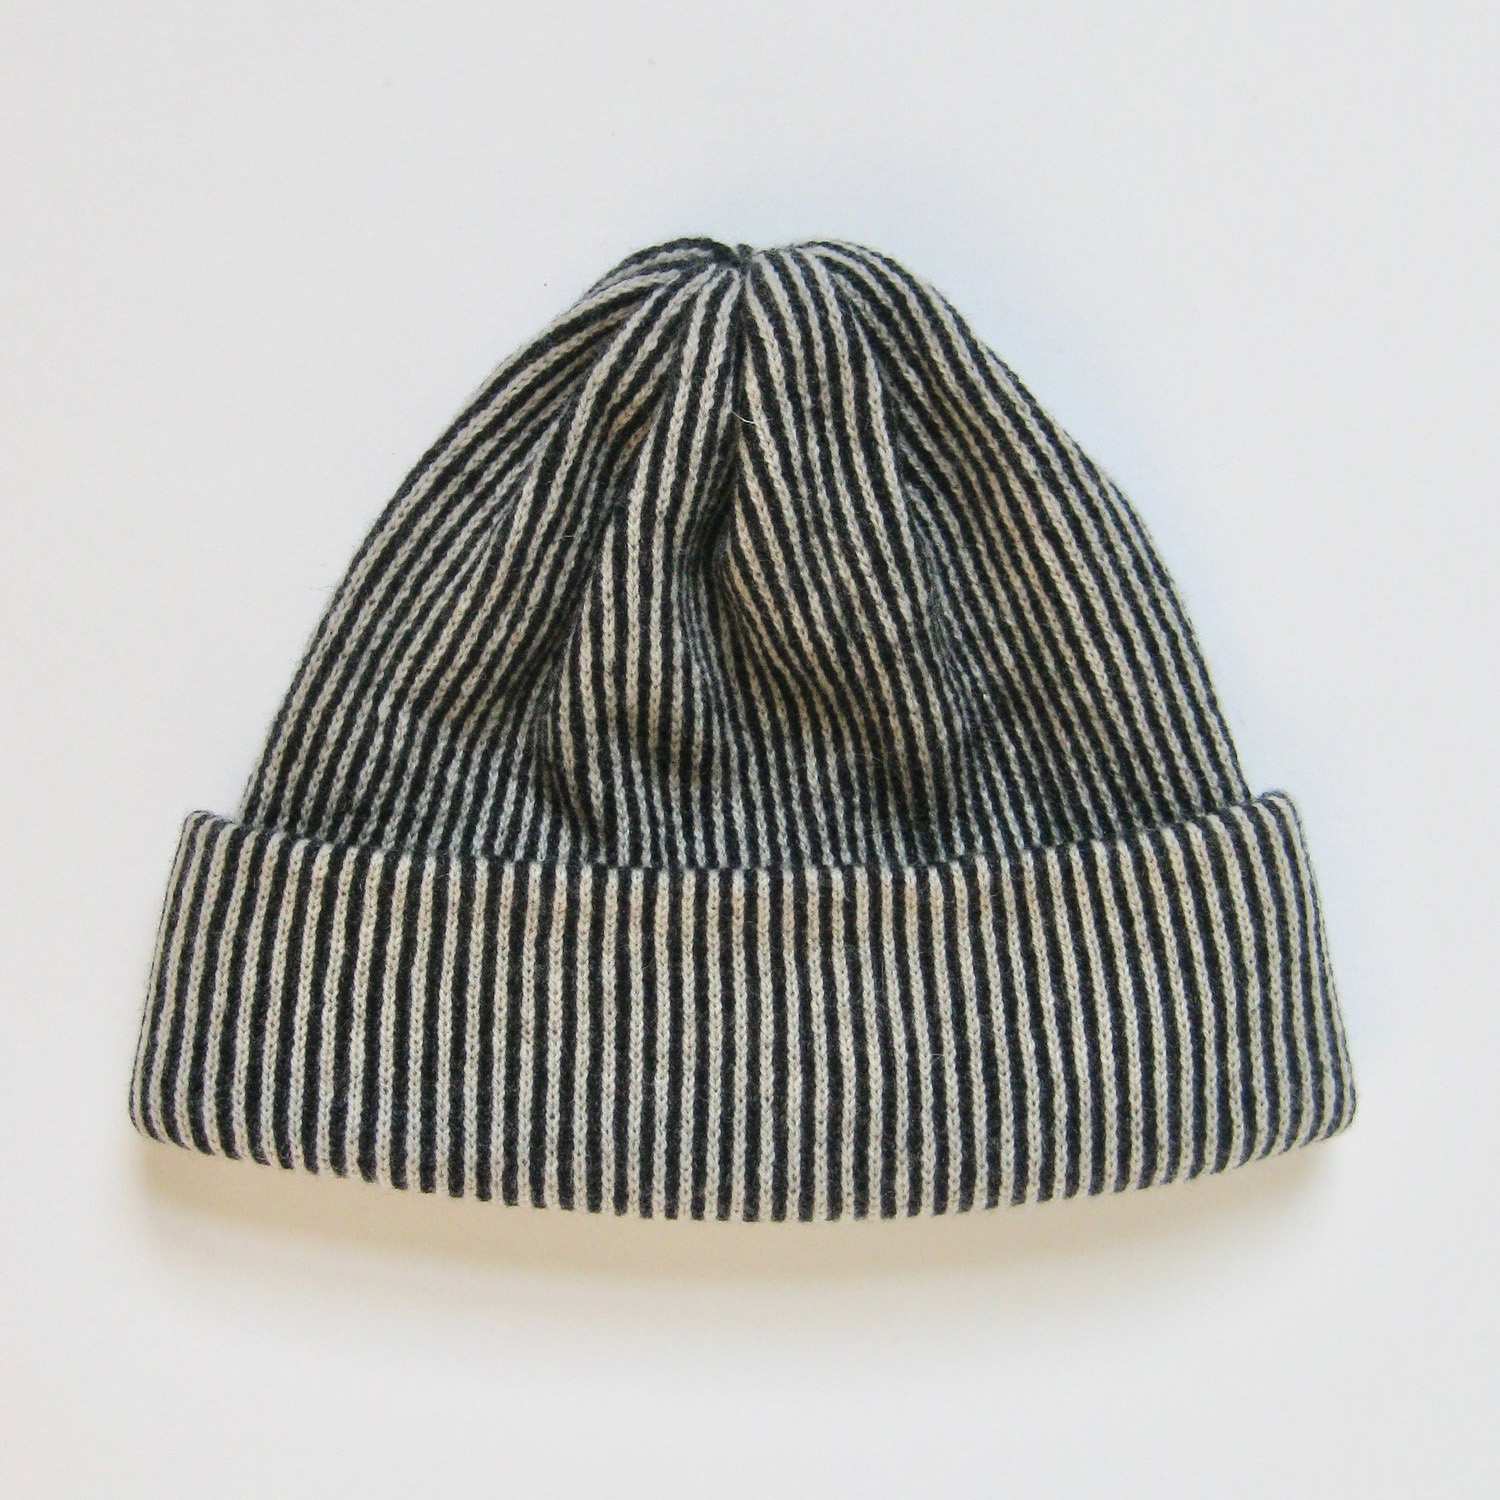 Kate Jones Knitwear- Hats